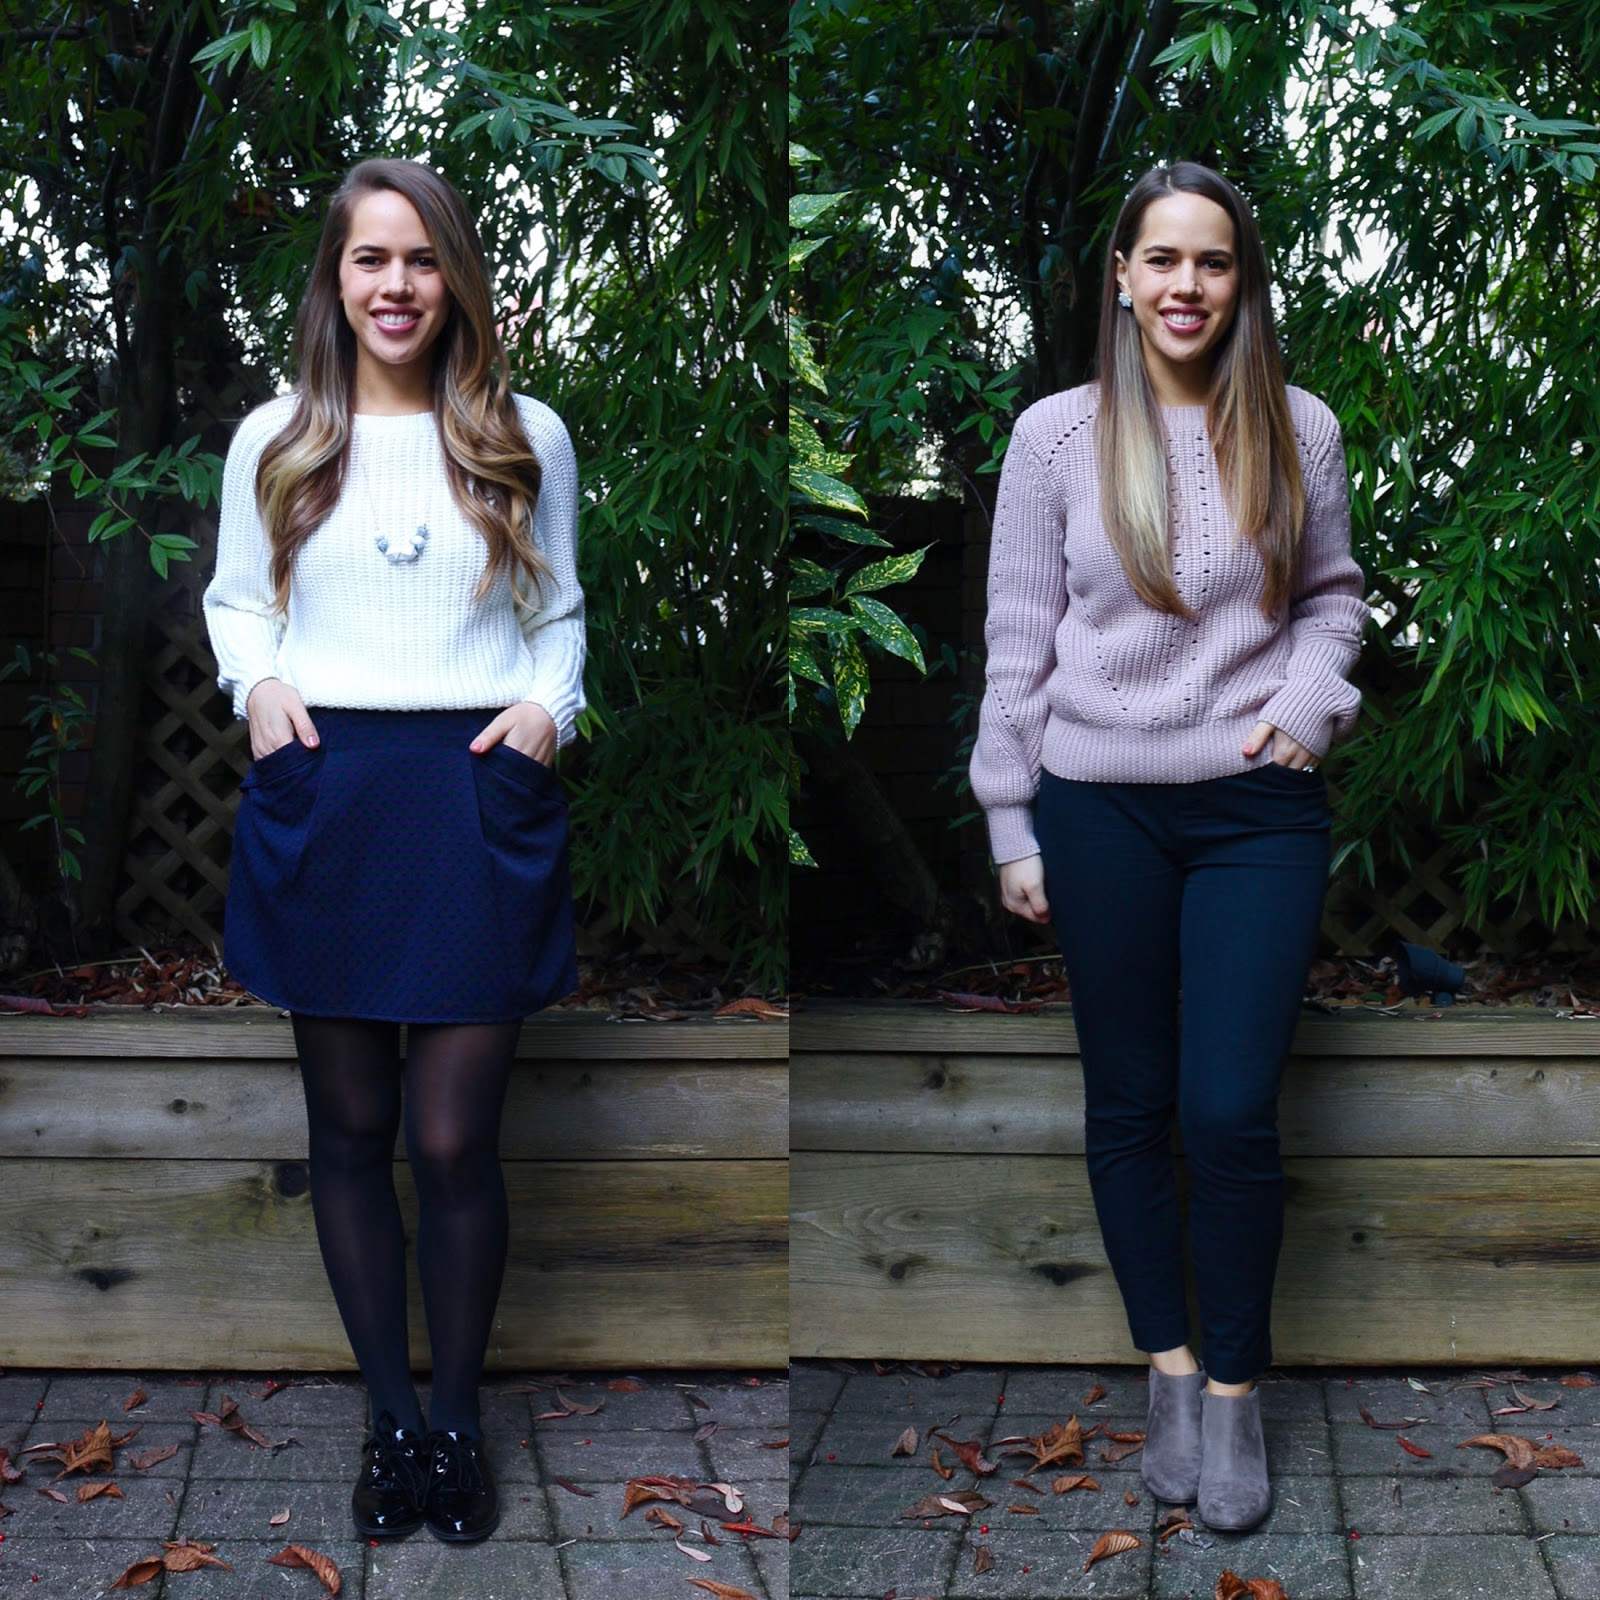 Jules in Flats December Outfits (Business Casual Winter Workwear on a Budget)